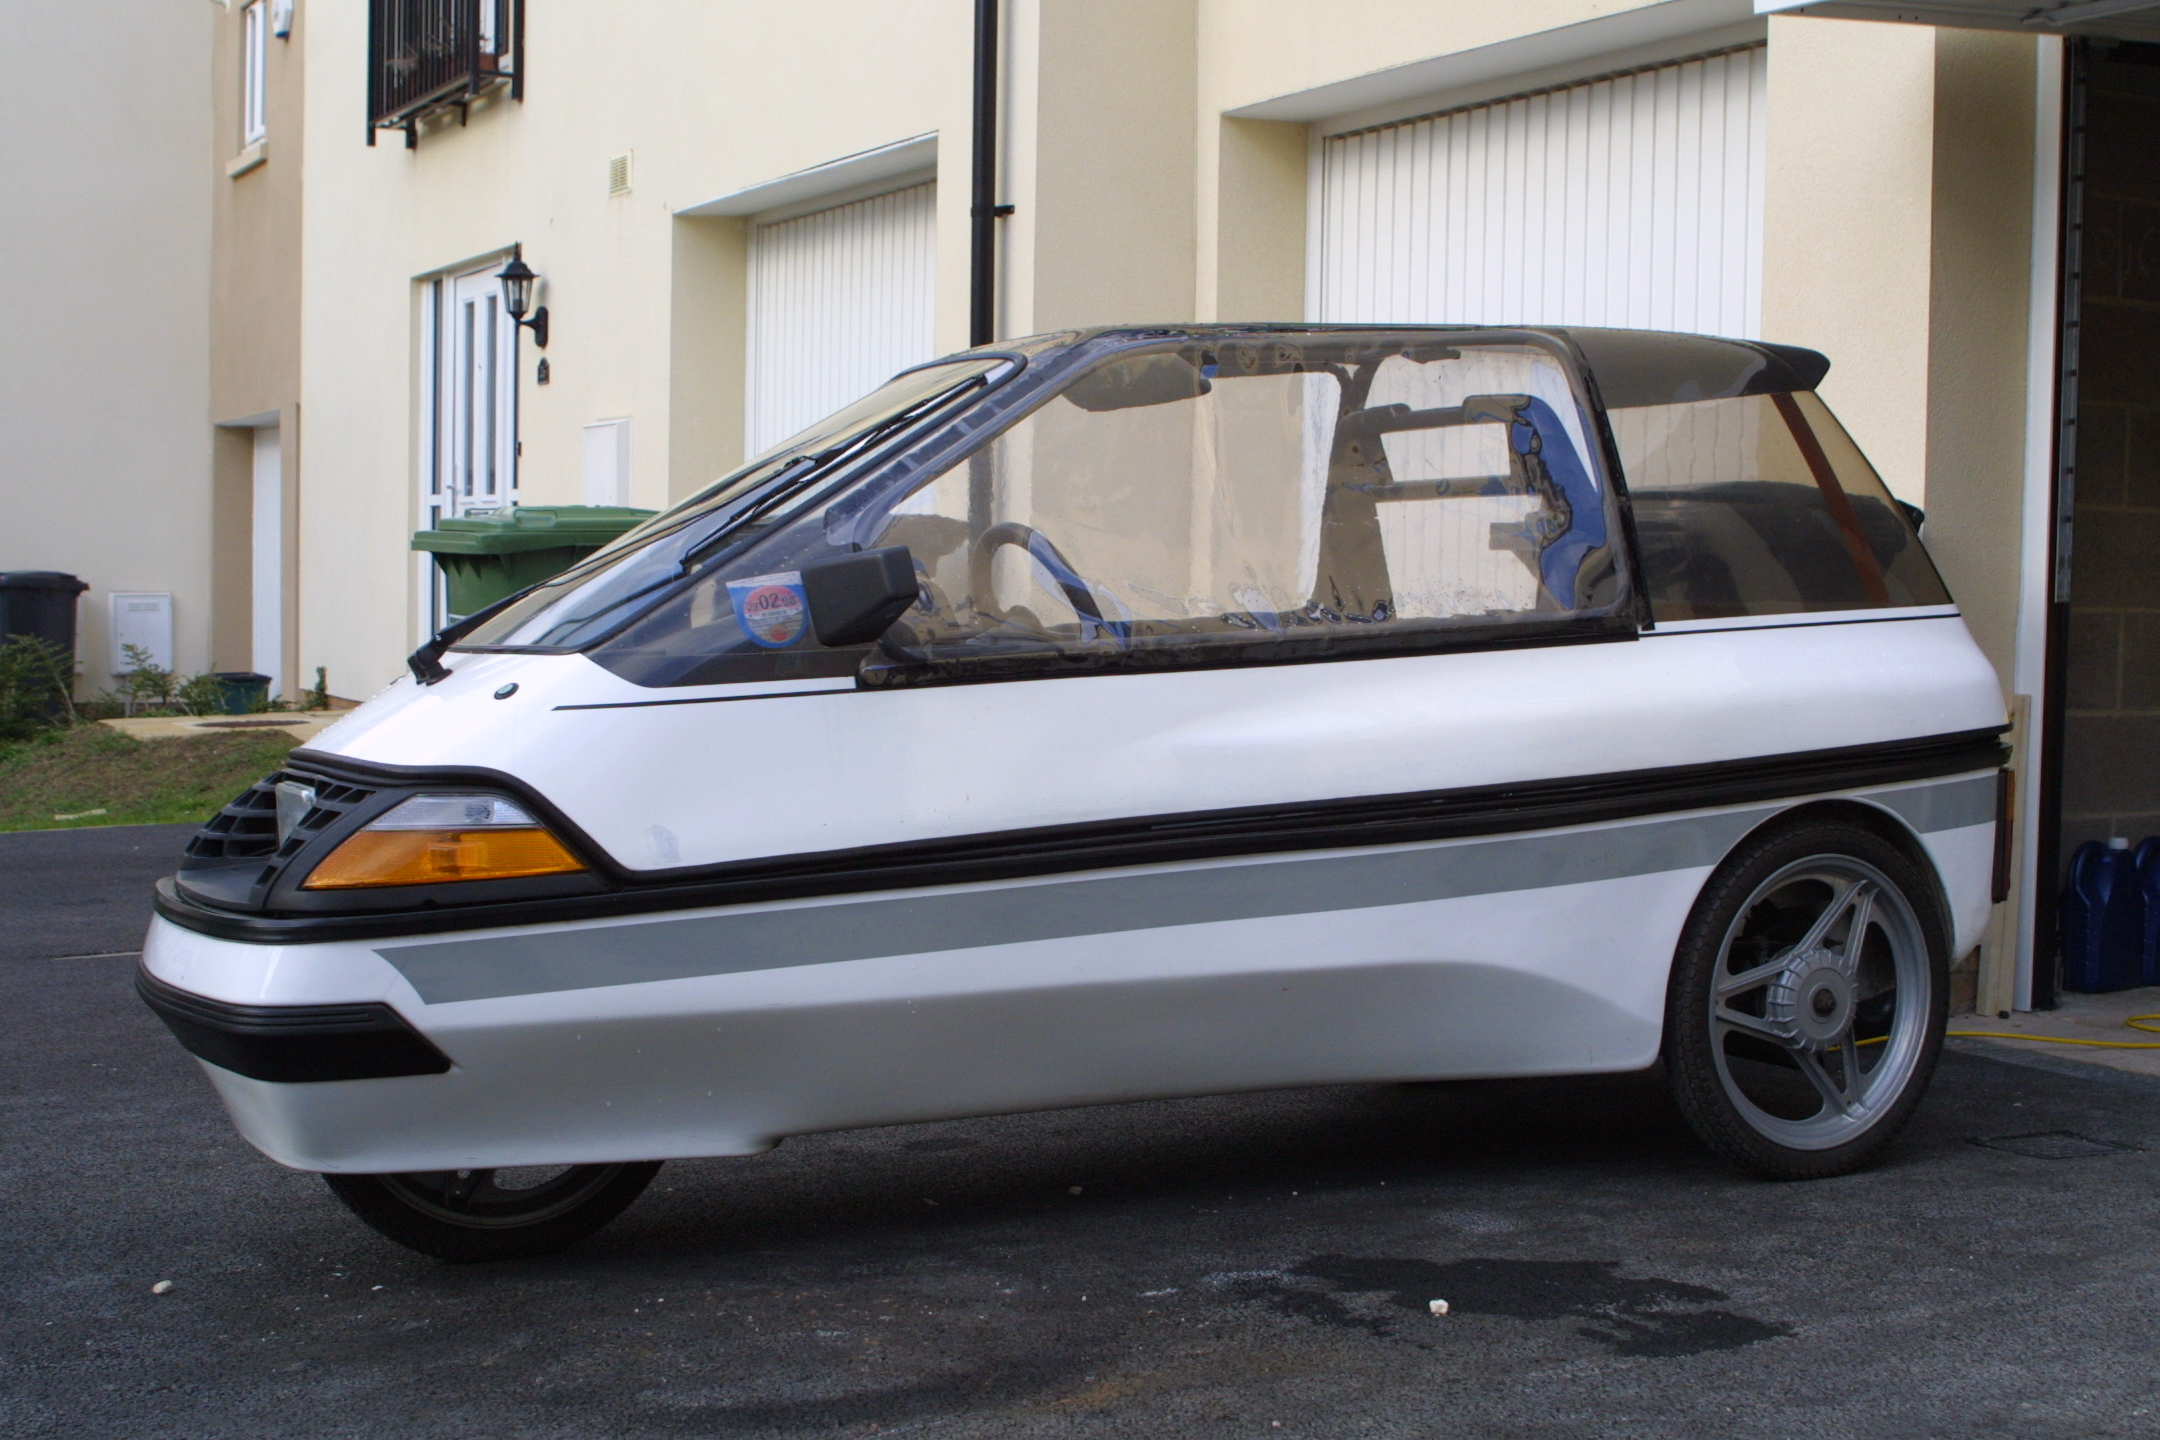 Take a Ride with These Weird, Ugly Cars